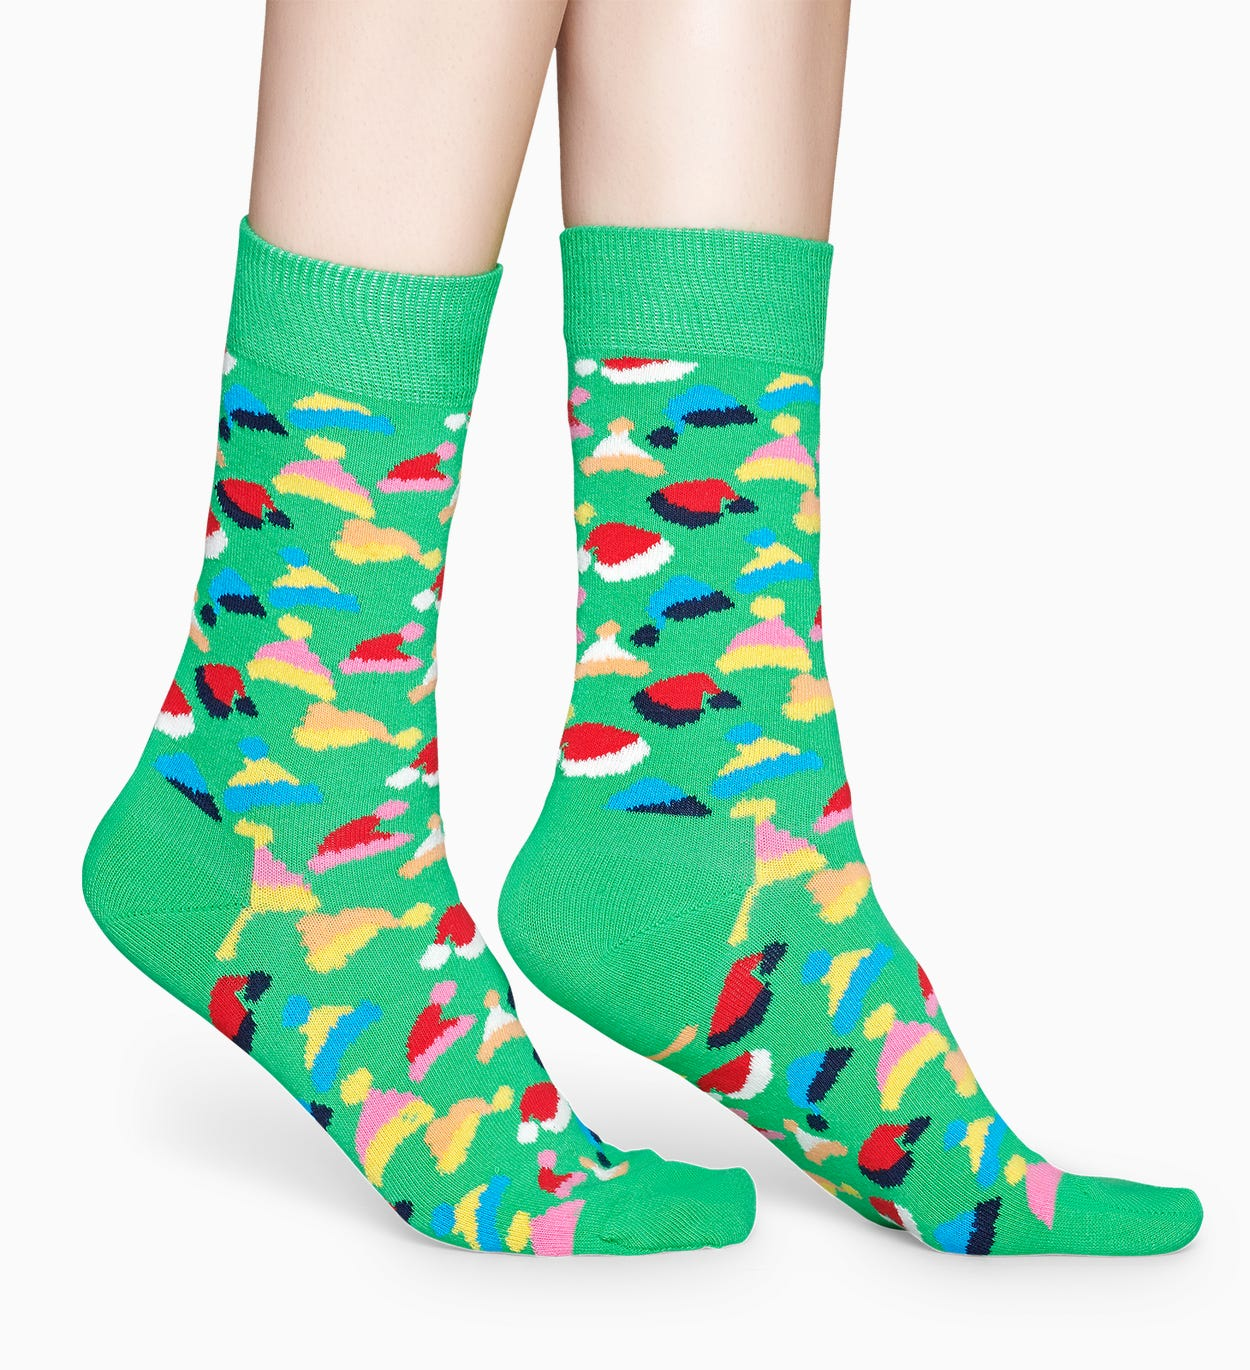 Patterned Green Socks: Santas Hats | Happy Socks